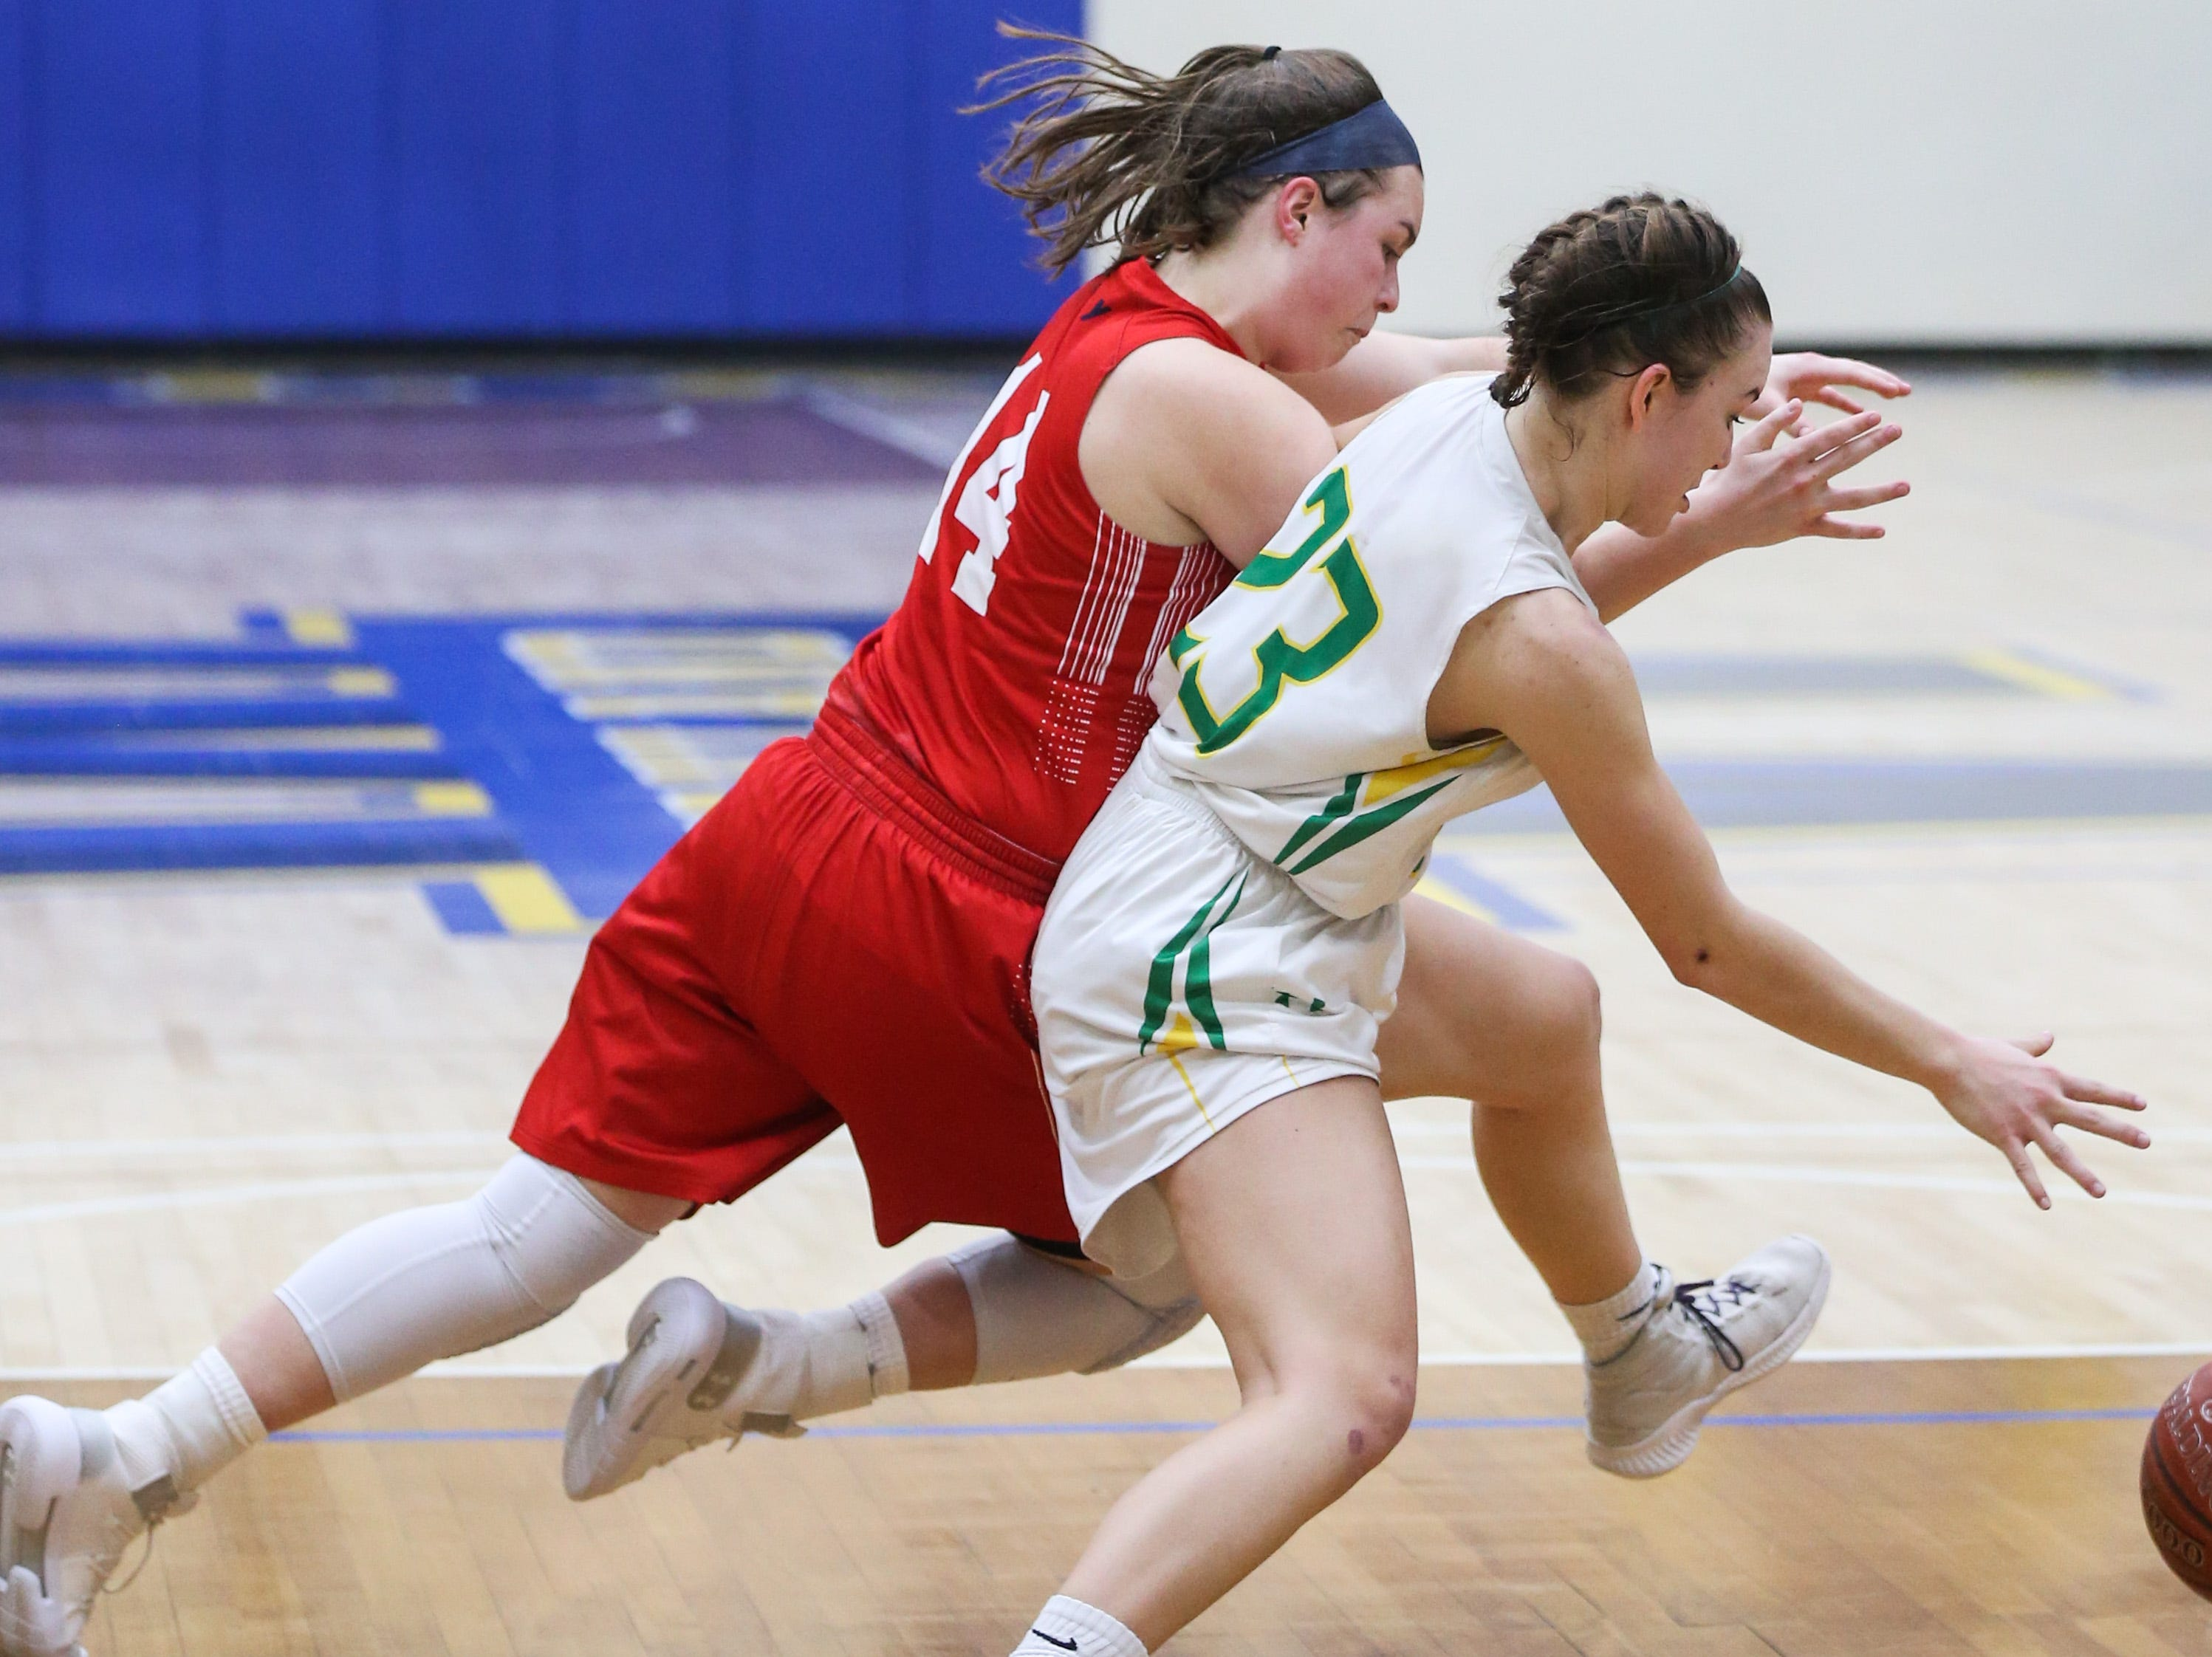 Jim Ned's Jenna Moore and Idalou's Shaylee Stovall fight for possession of the ball during the I-3A regional tournament Friday, Feb. 22, 2019, at Wayland Baptist University in Plainview.